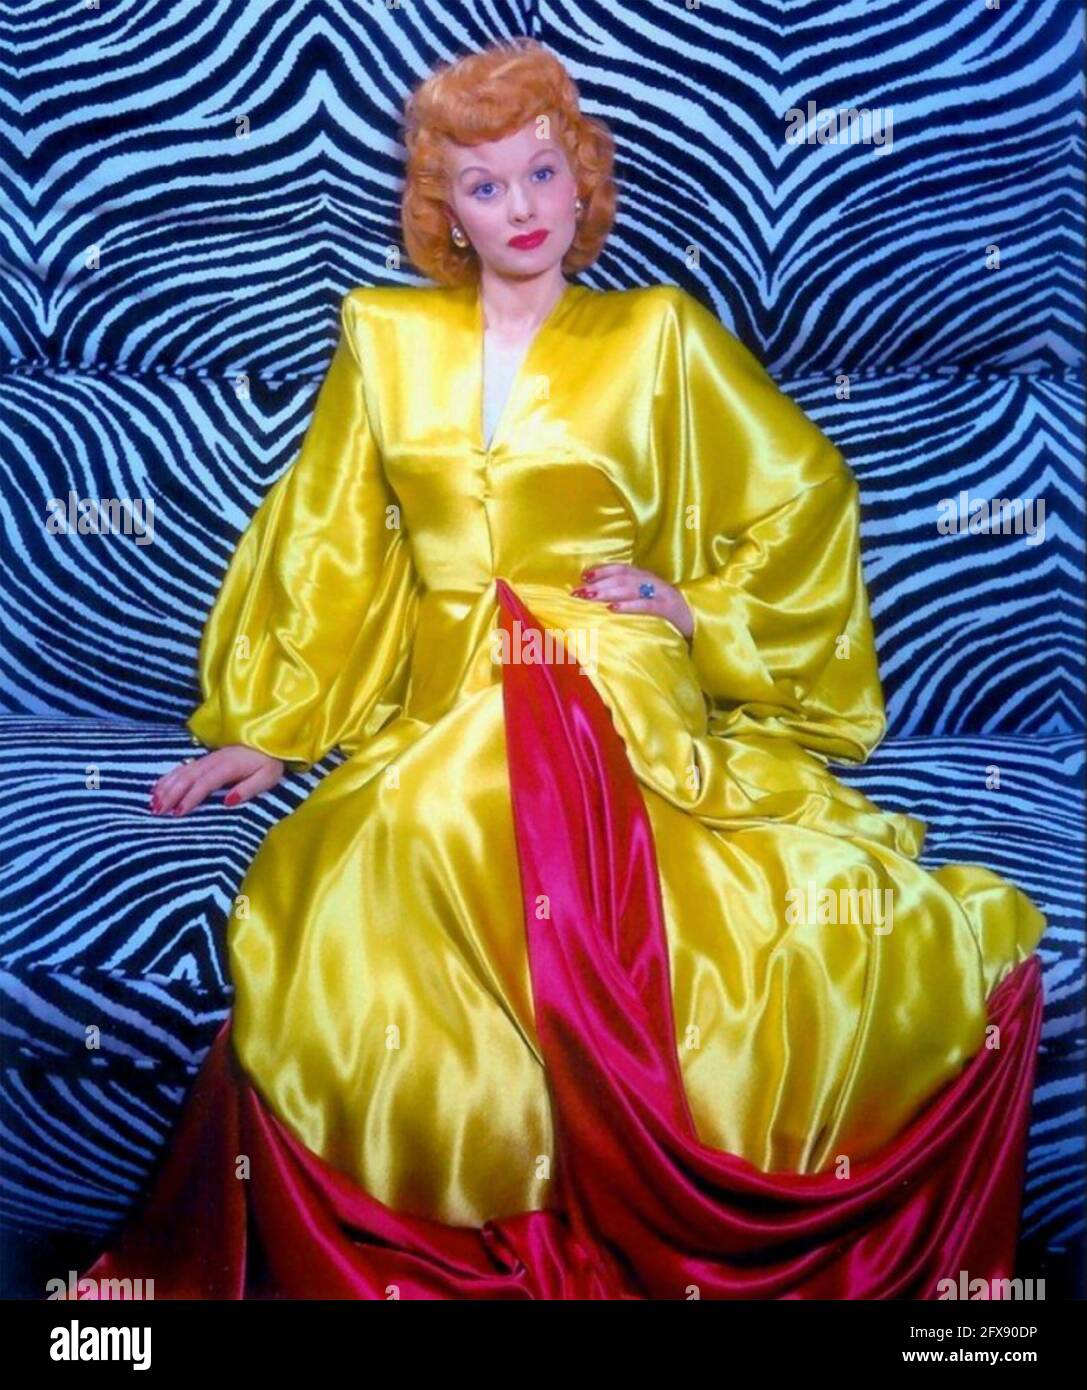 LUCILLE BALL (1911-1989) American film actress and producer about 1945 Stock Photo